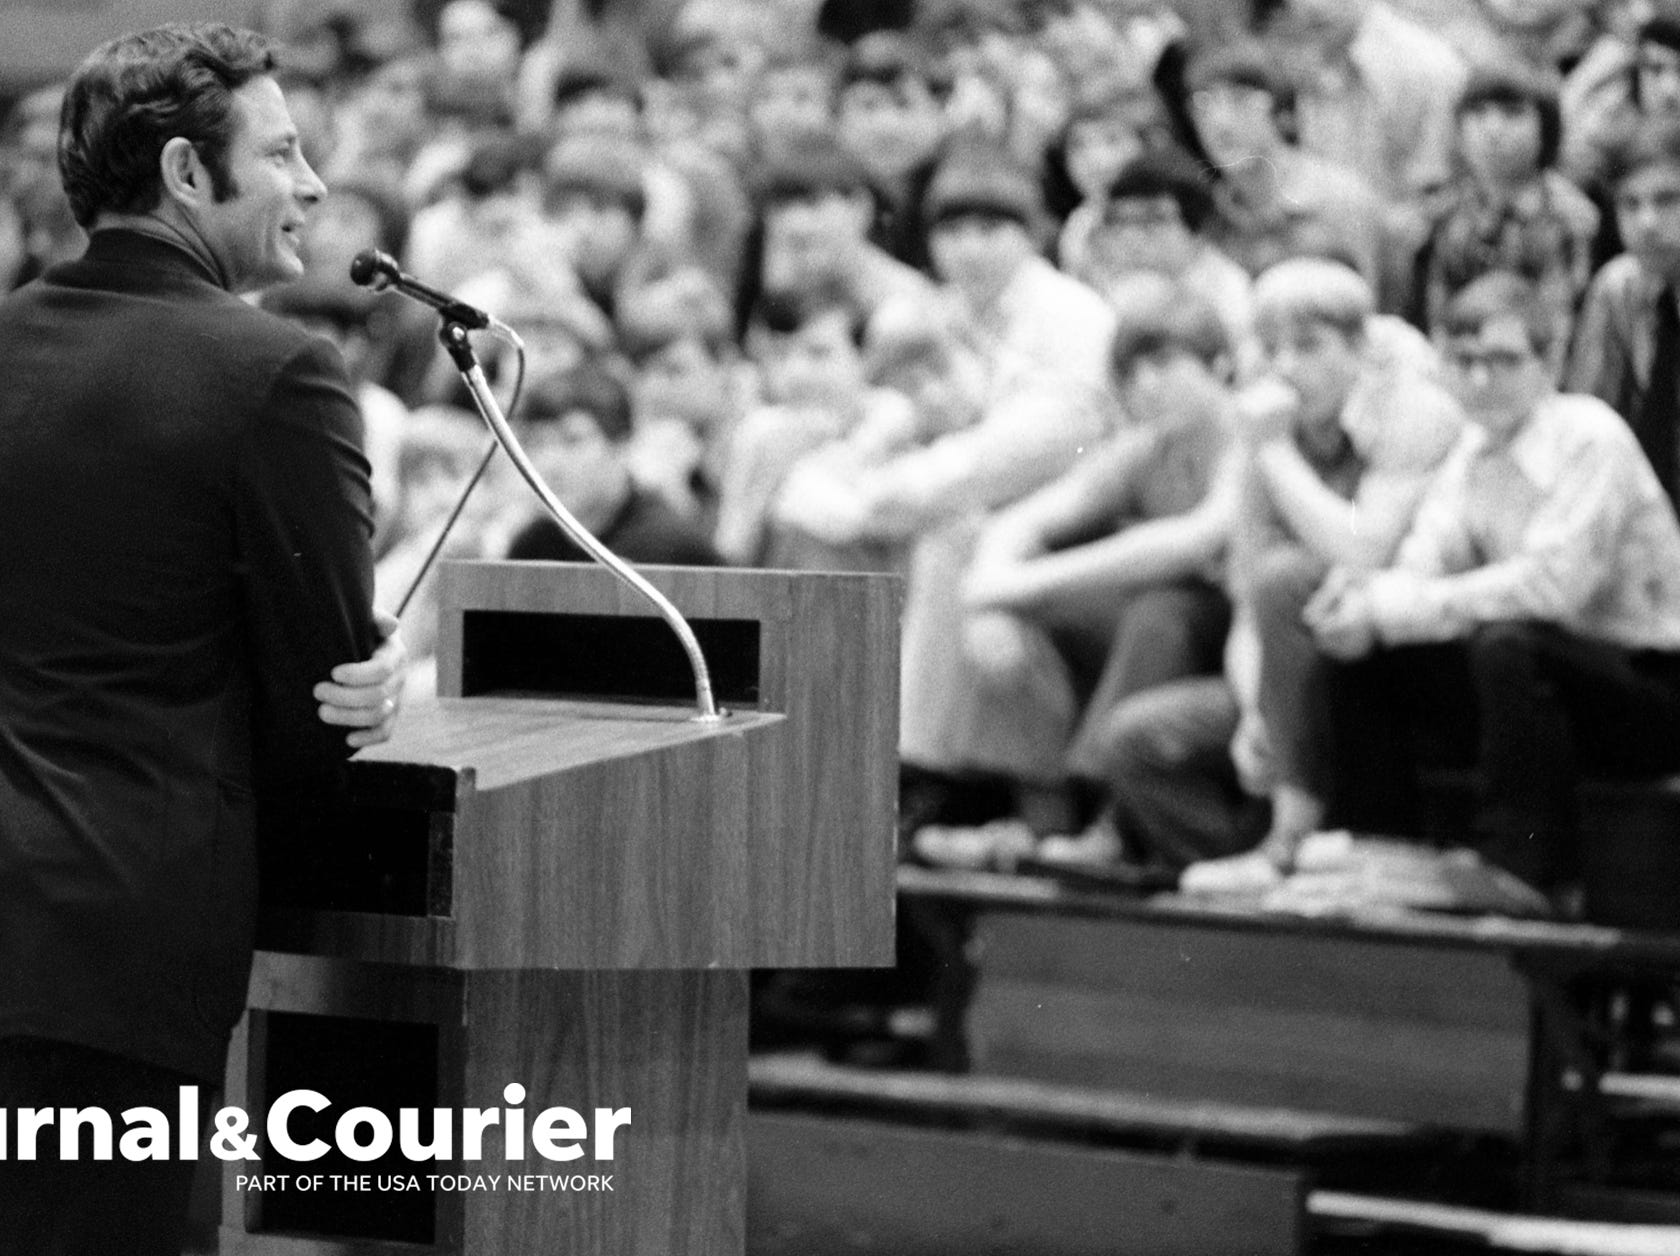 Birch Bayh speaks at Central Catholic in Lafayette on November 30, 1972.